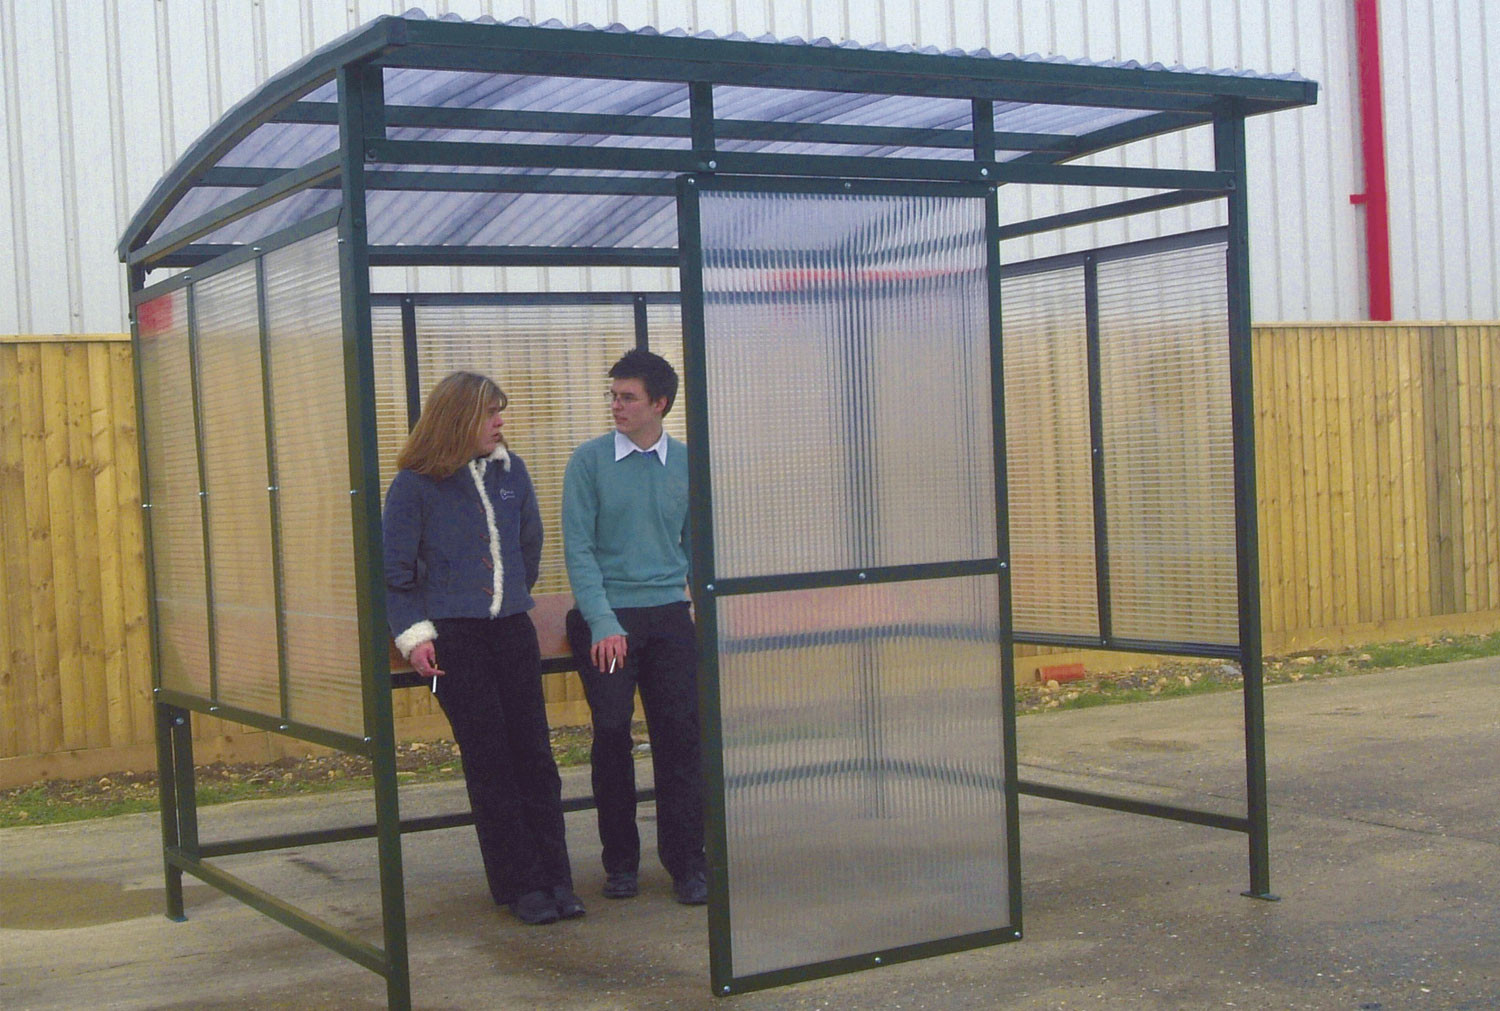 Polycarbonate Smoking Shelter With Perch